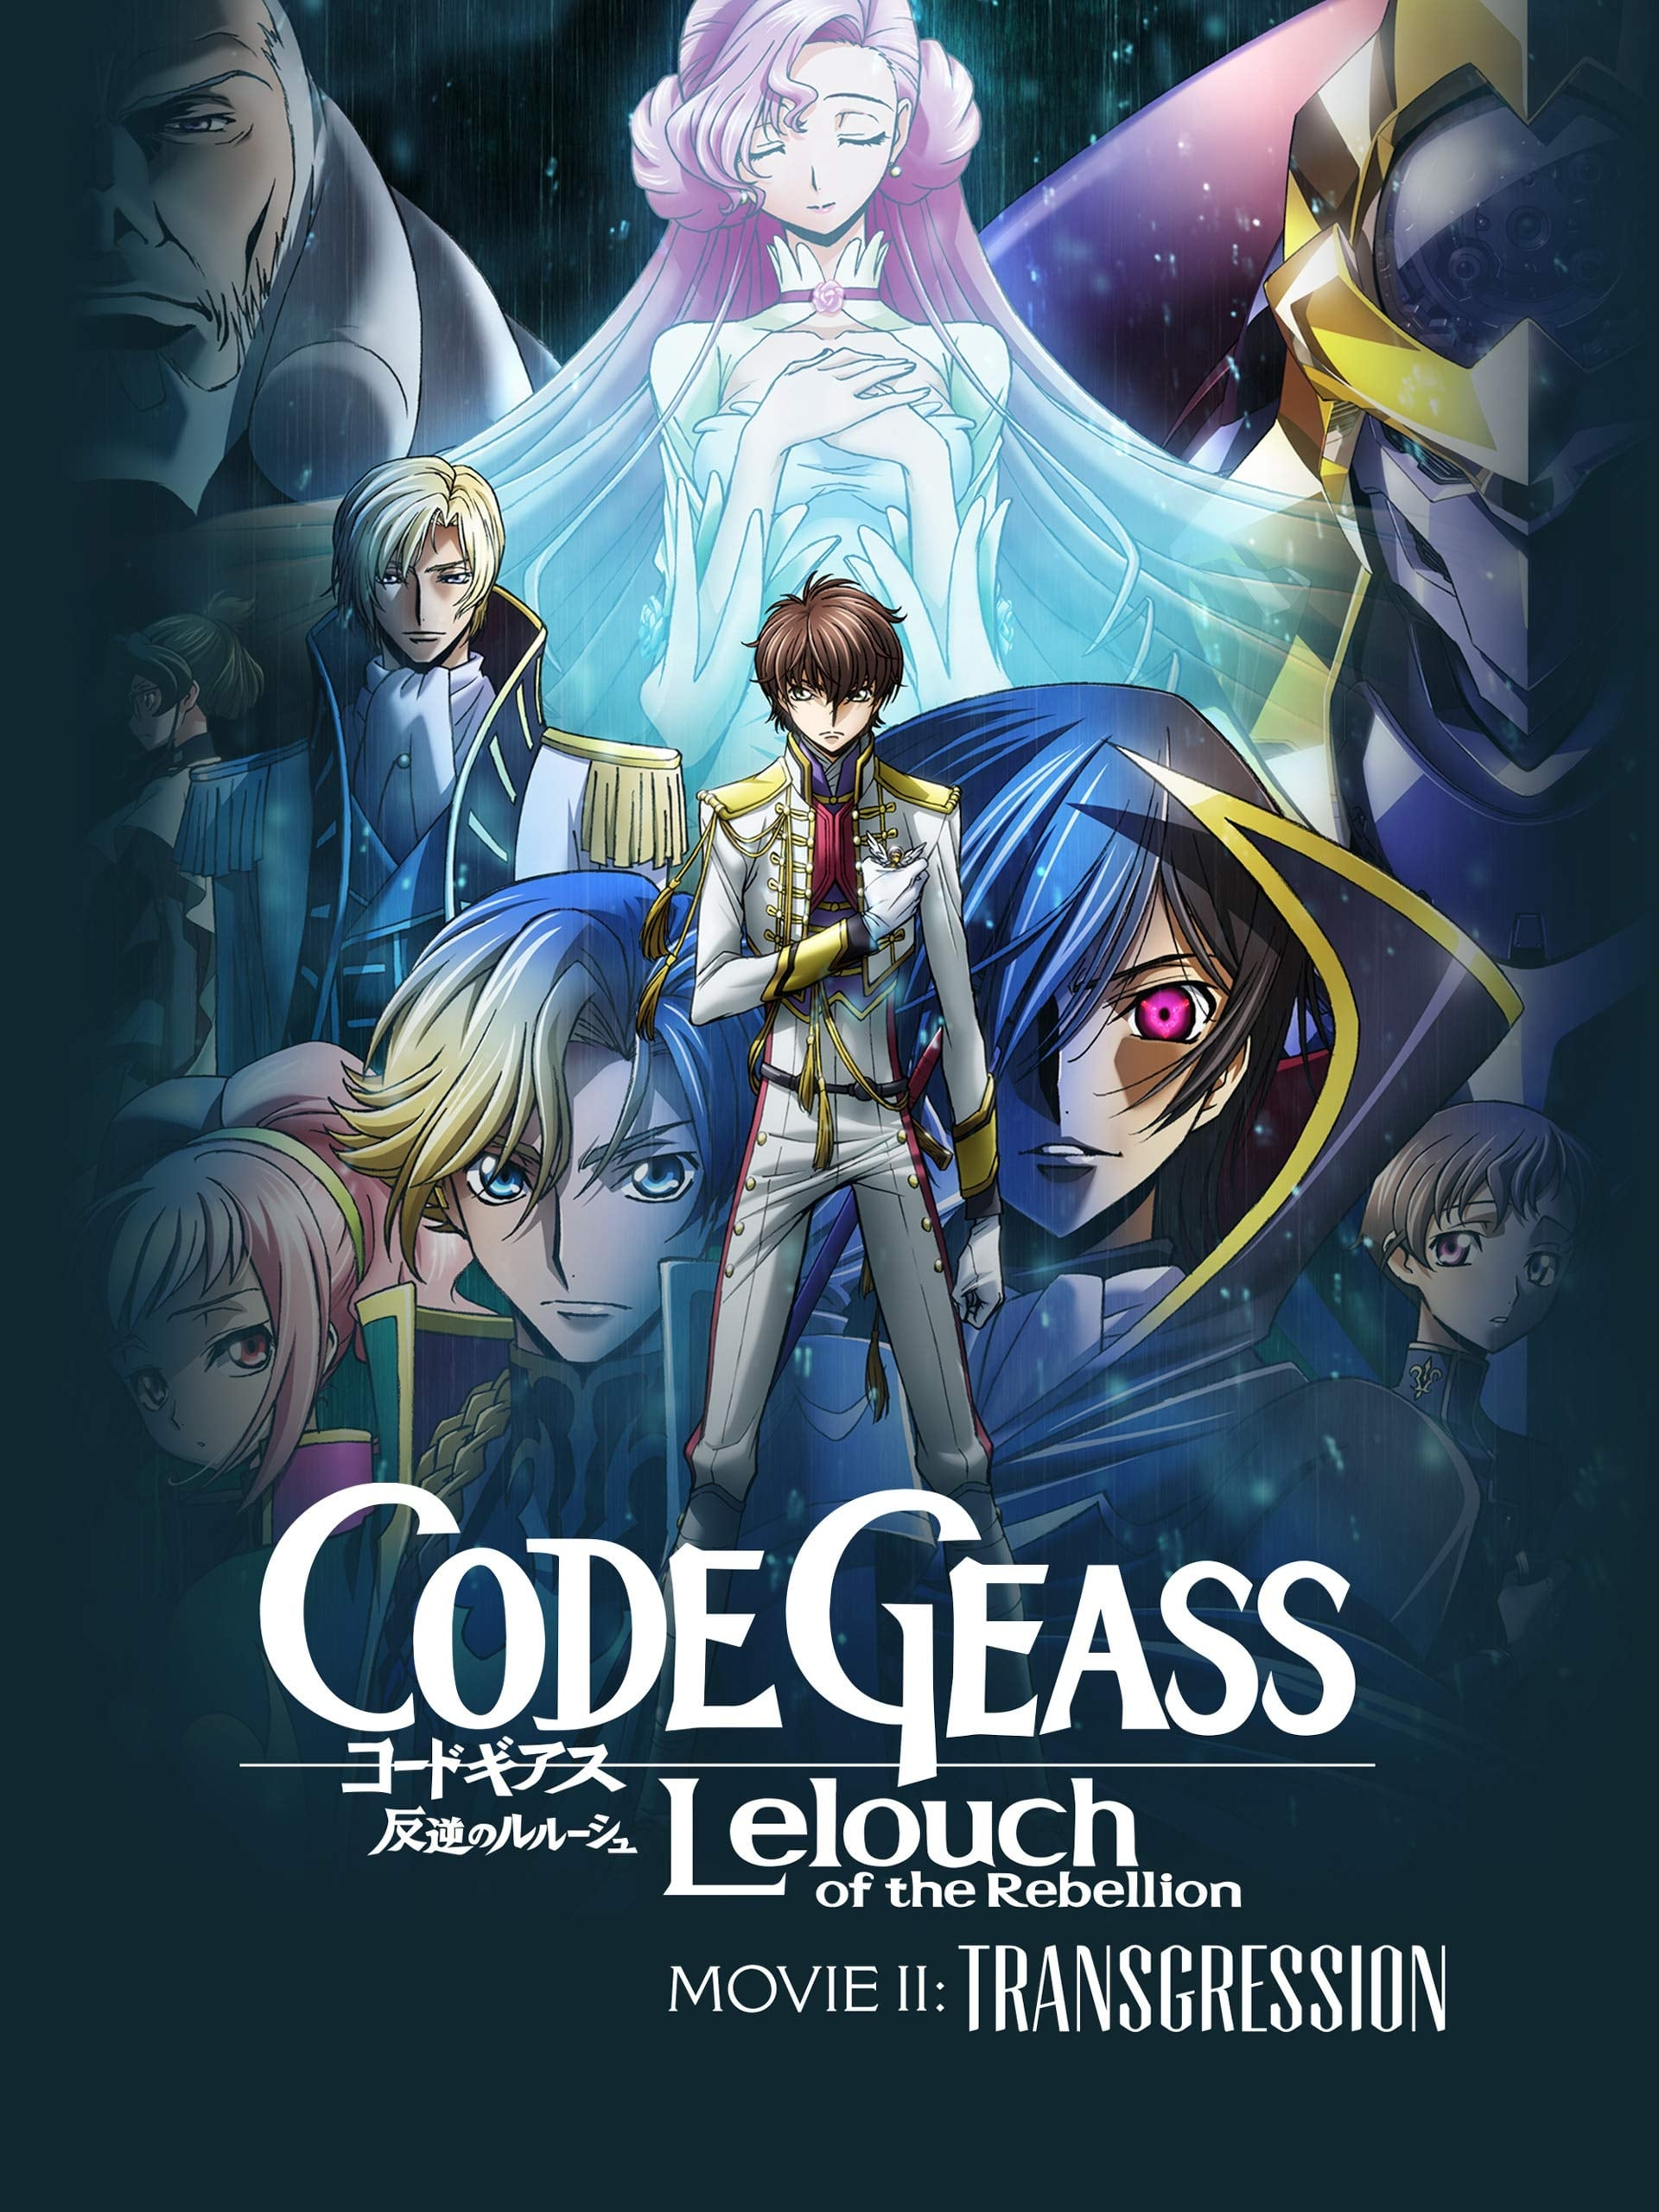 Code Geass: Lelouch of the Rebellion - Transgression (2018)